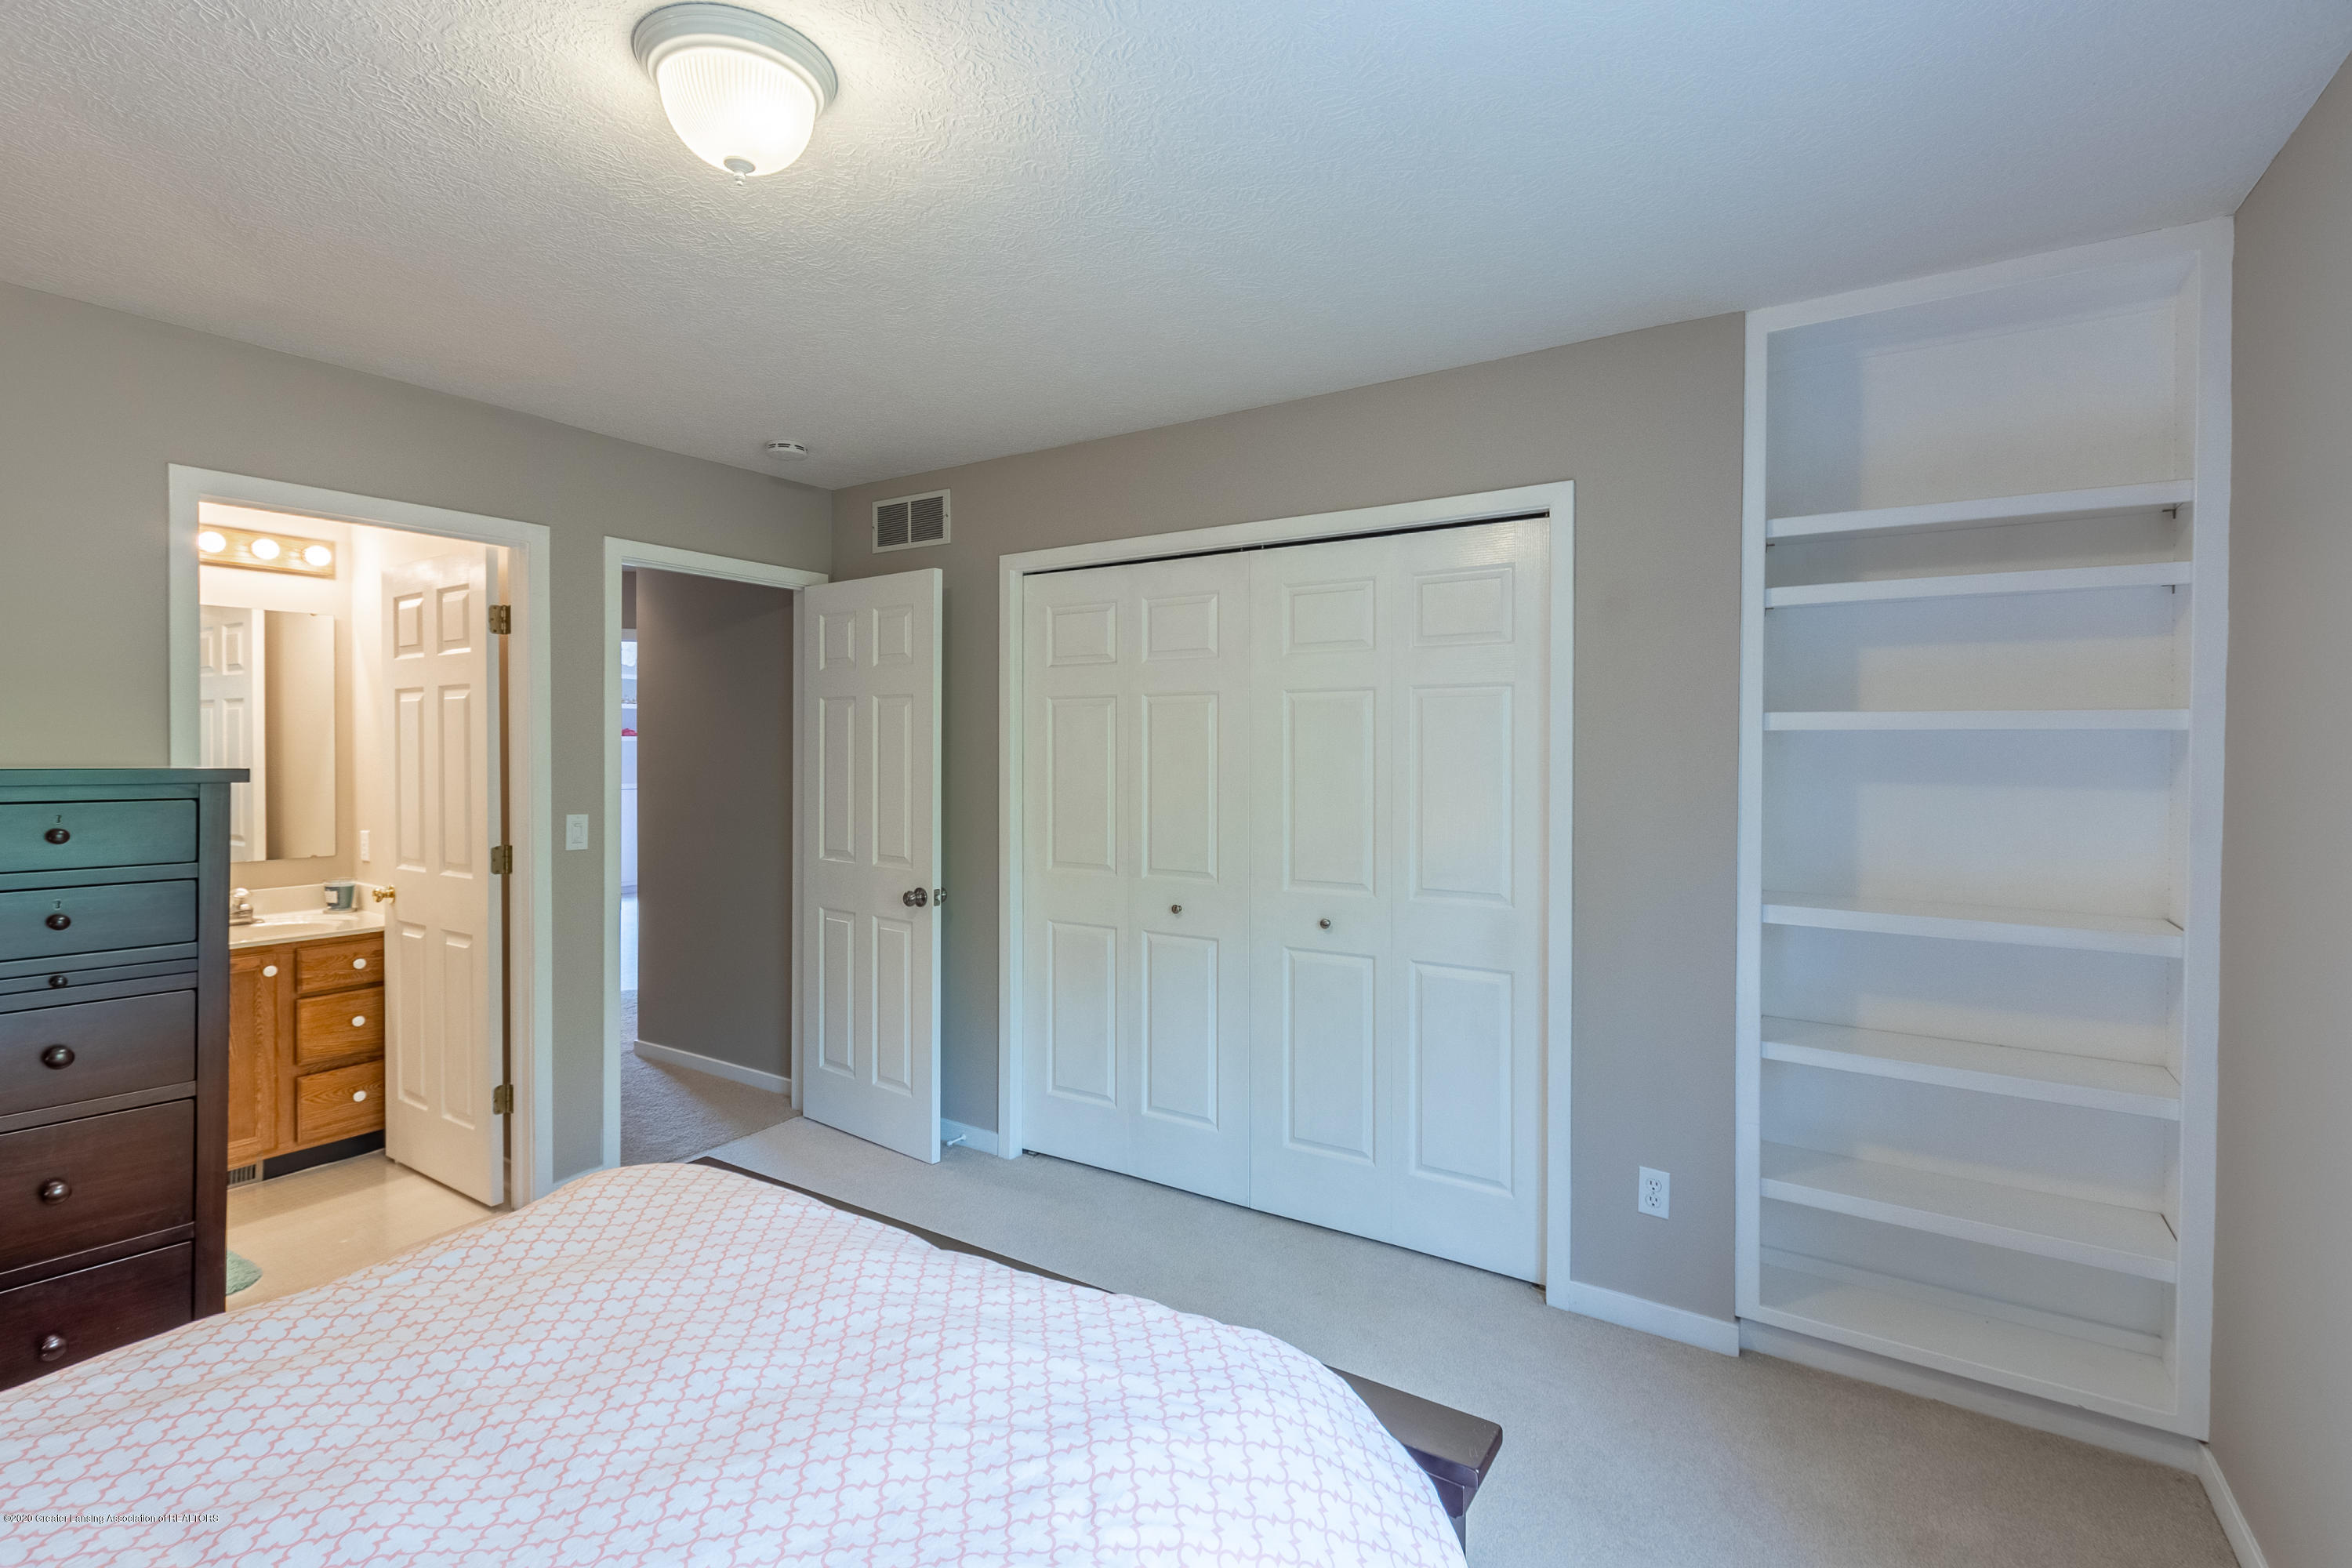 3668 Fairhills Dr - Bedroom 4 - 65